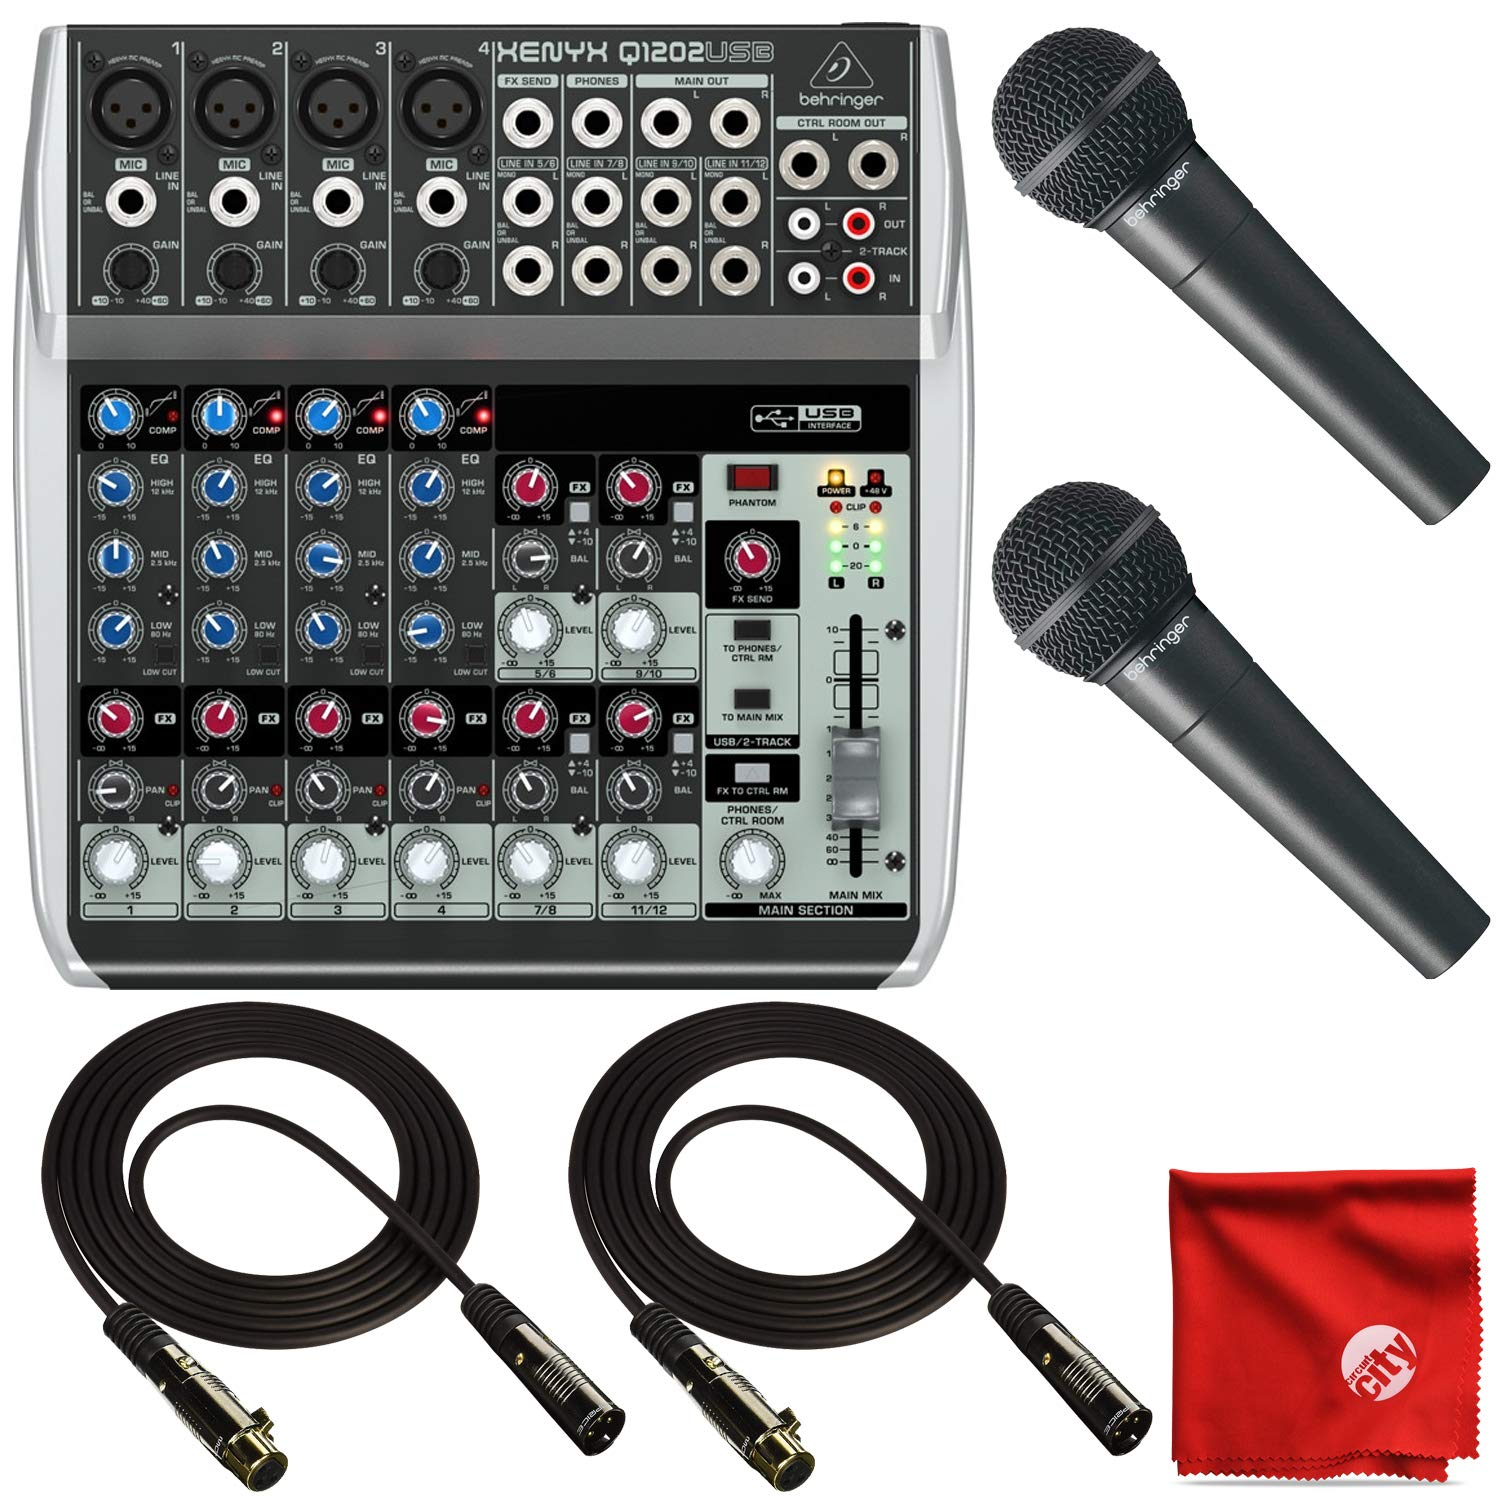 Behringer Q1202USB 12-Channel Mixer Bundle with 2X XM8500 Dynamic Microphones and 2X 10' XLR Cable and Circuit City Microfiber Cleaning Cloth.